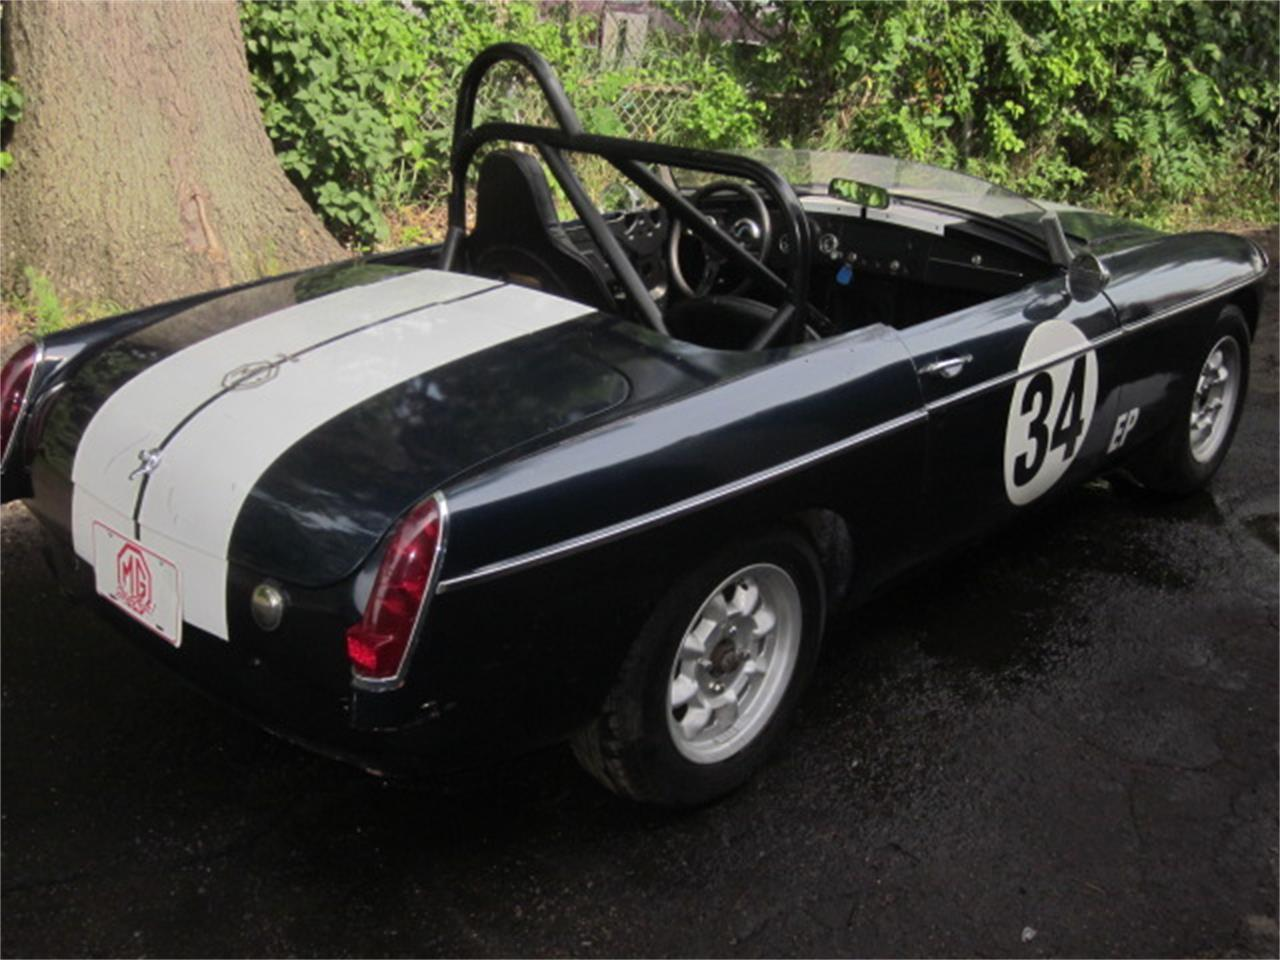 1967 MG MGB for sale in Stratford, CT / ClassicCarsBay com